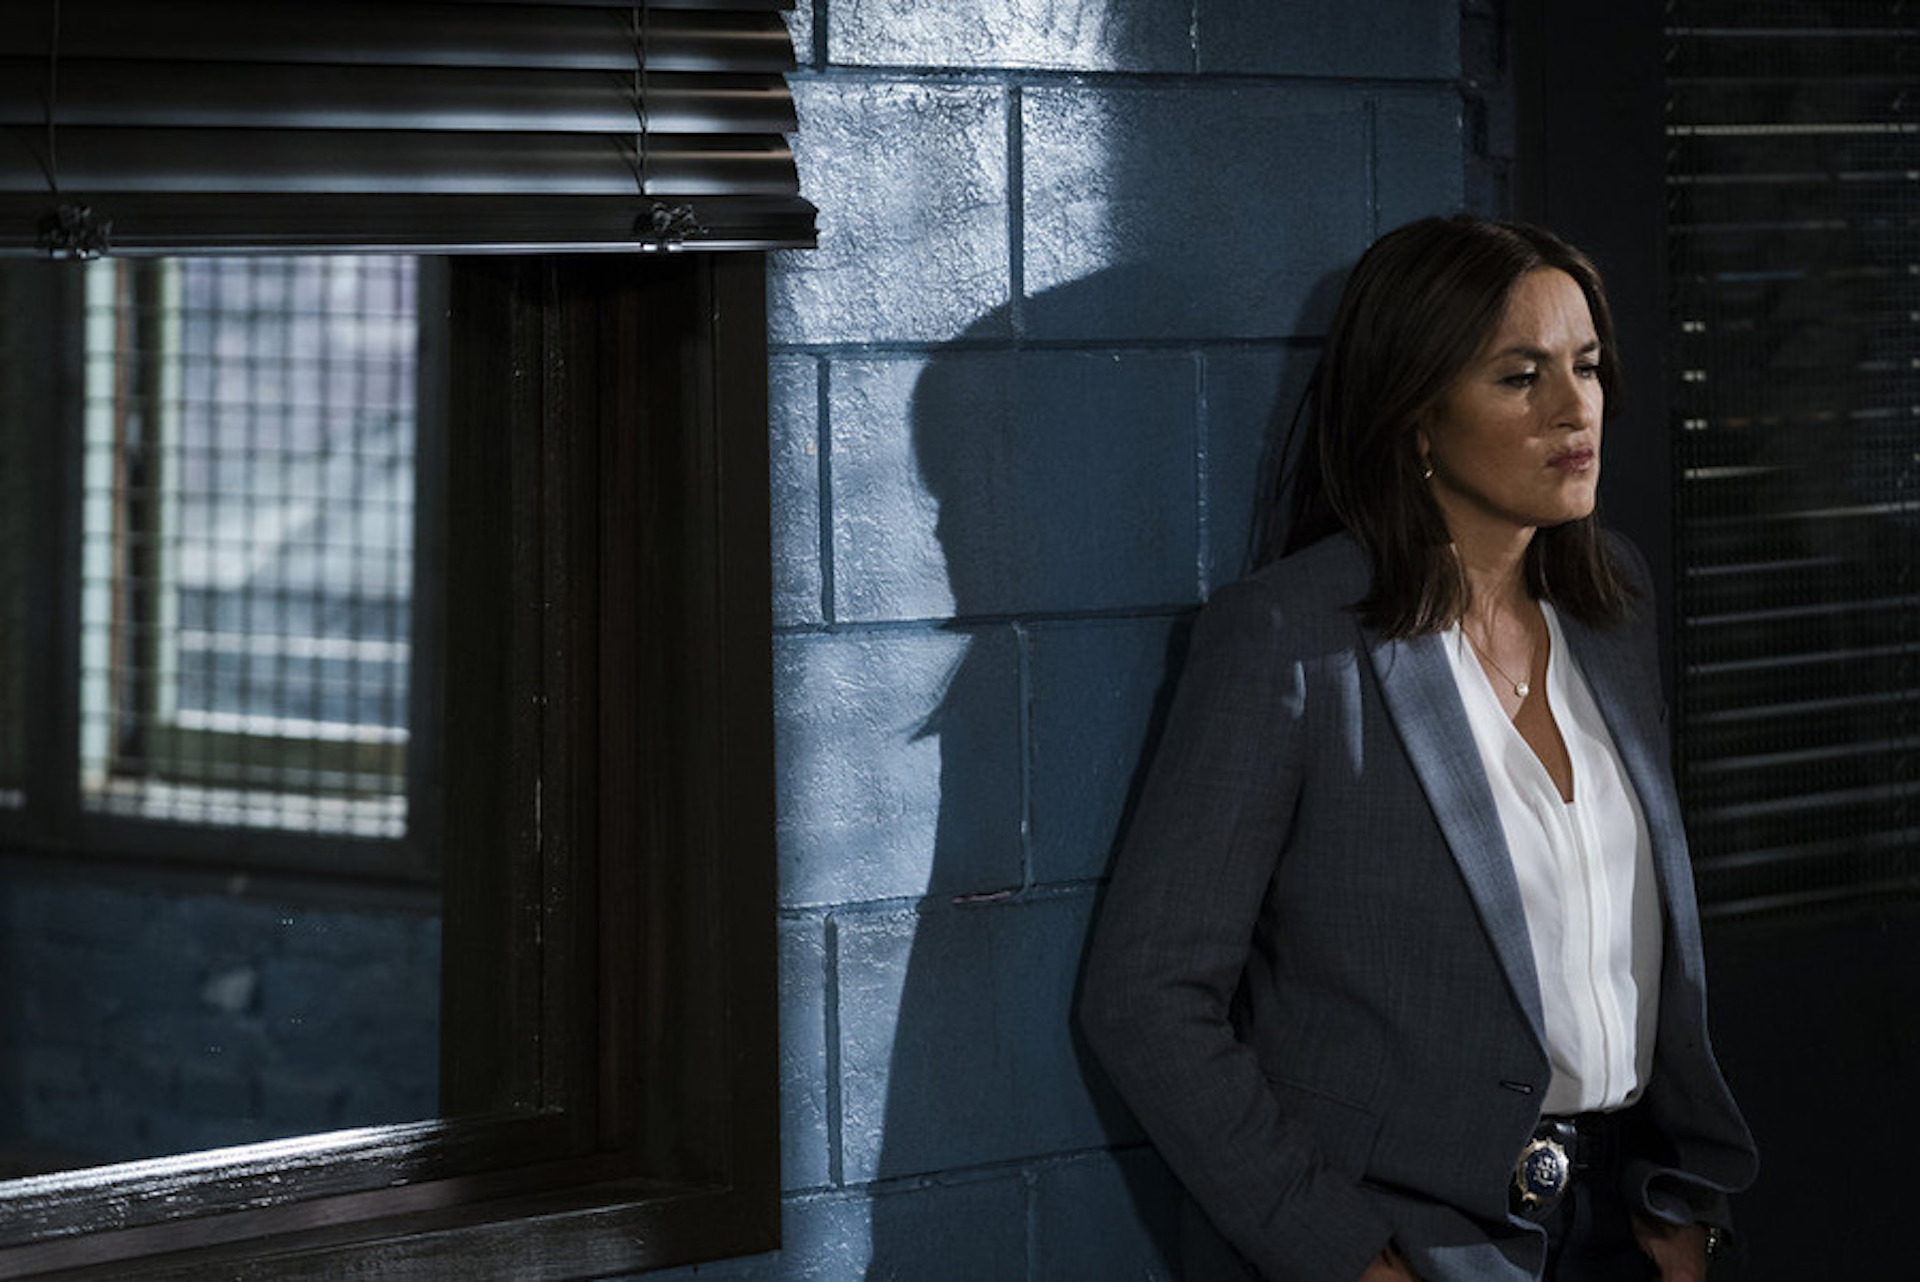 Mariska keeps it cool